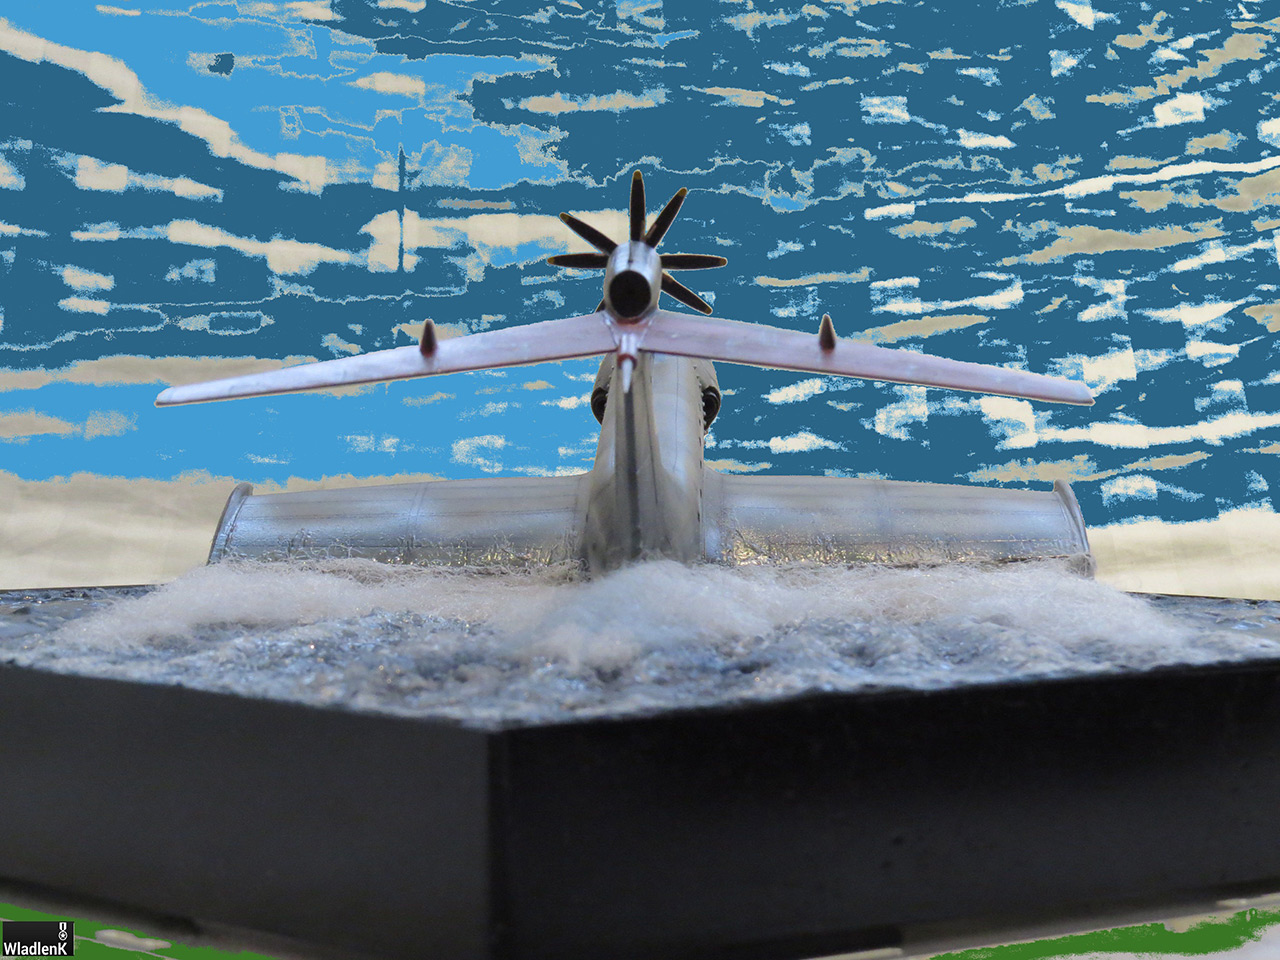 Dioramas and Vignettes: The Last Flight, photo #12